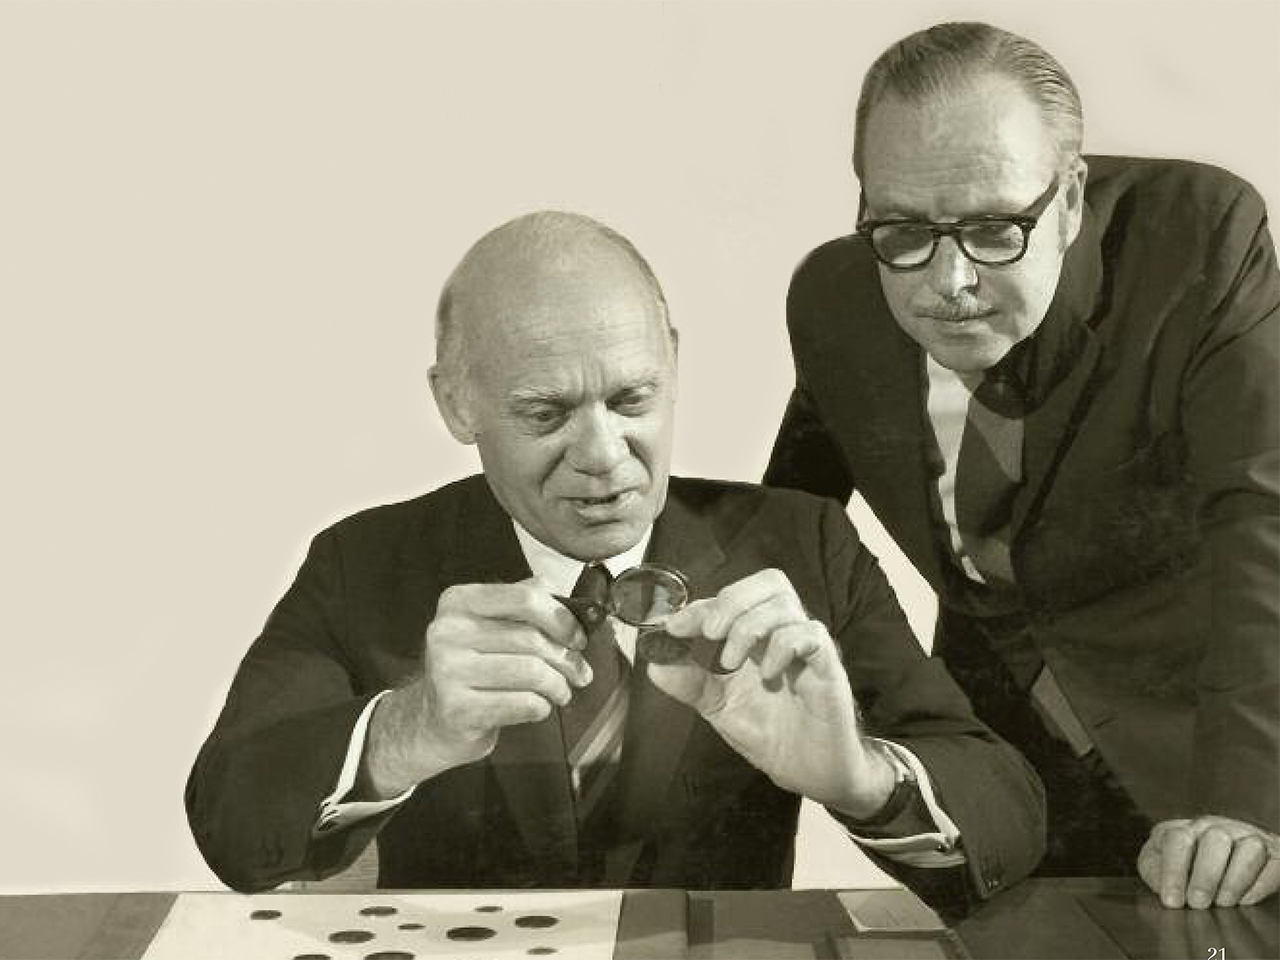 1960s image of two men looking at coins